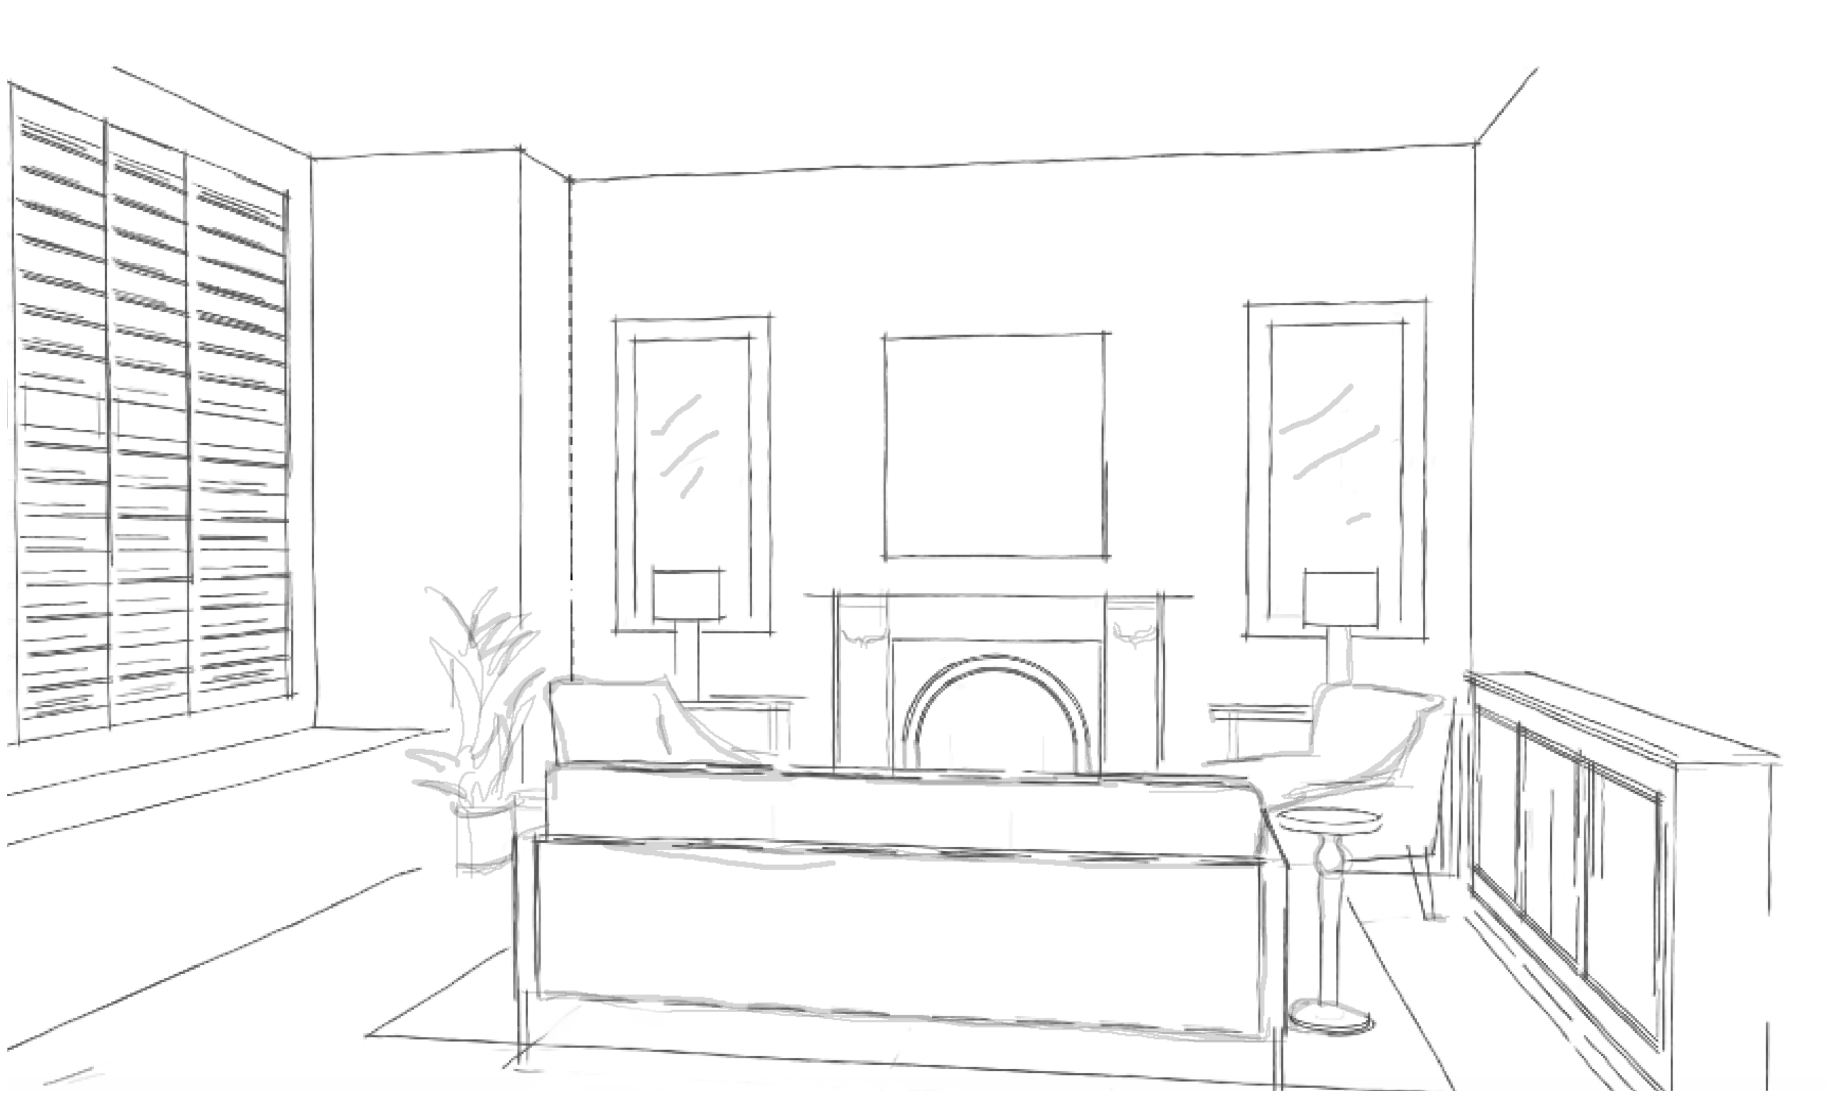 Simple sketch layout